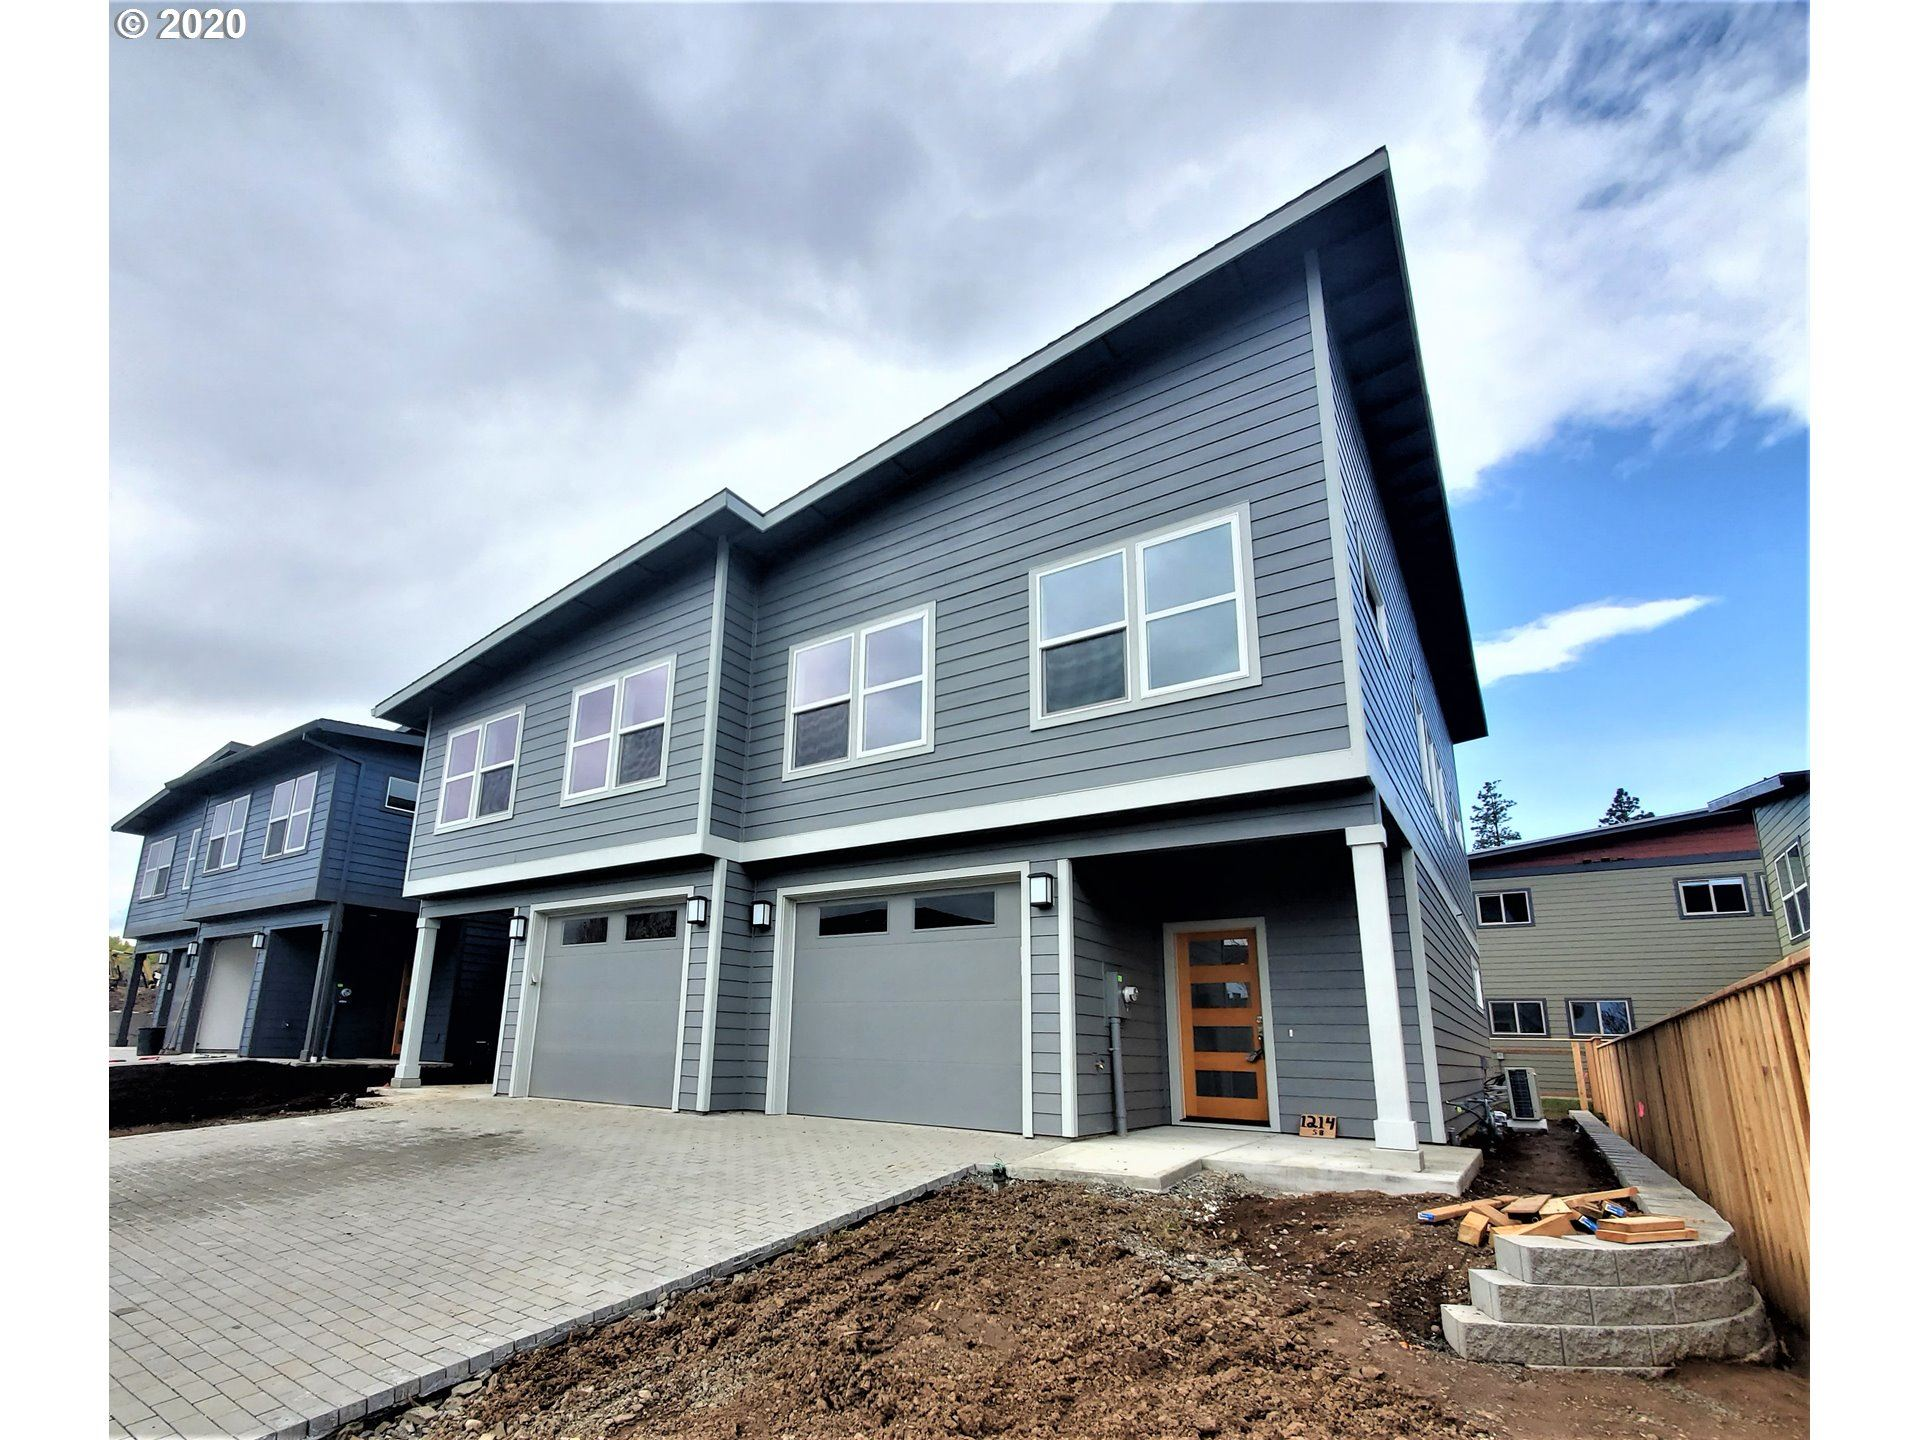 Photo of 1214 29th ST, Hood River, OR 97031 (MLS # 20188075)